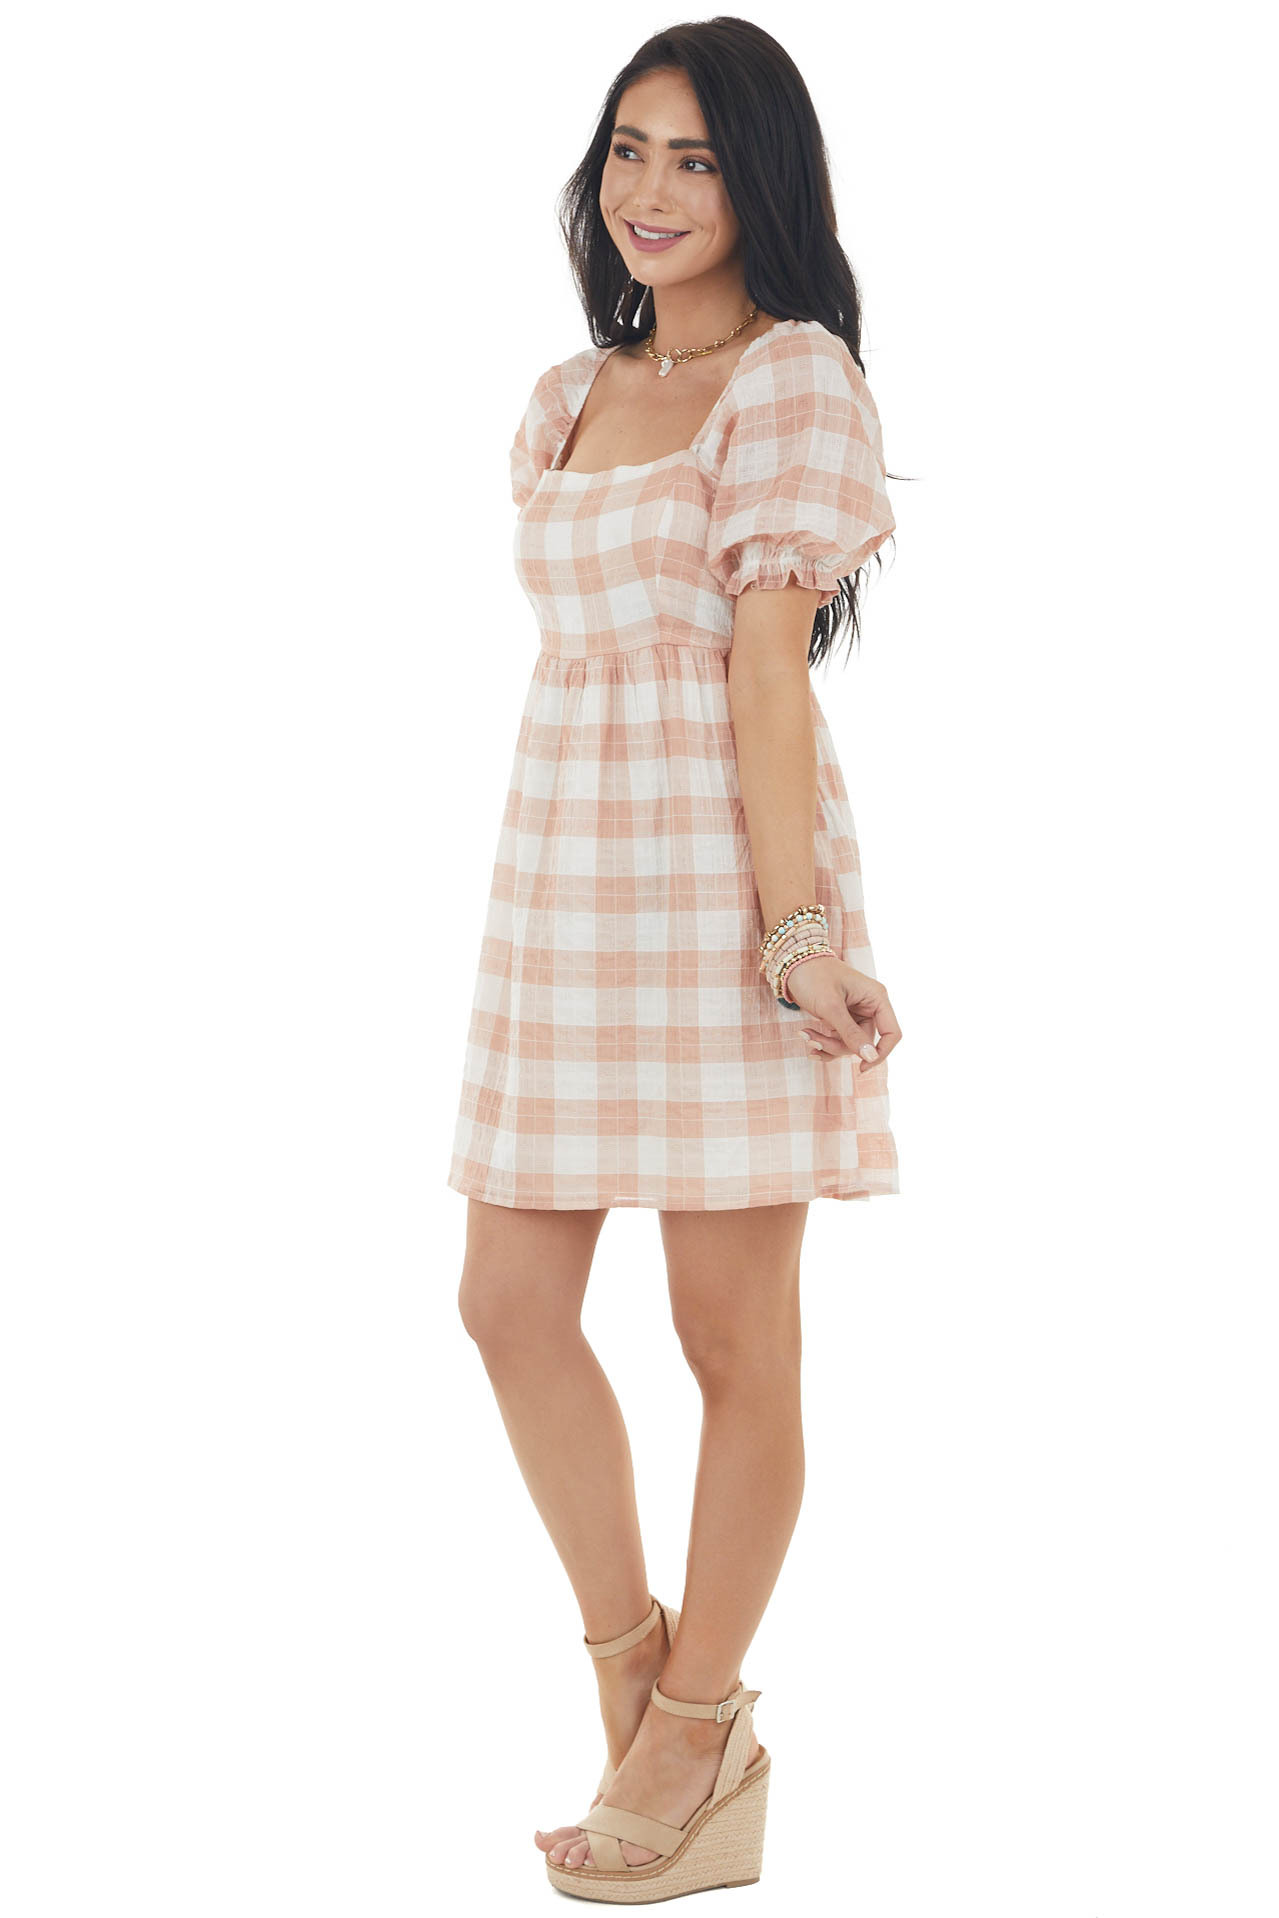 Peach Plaid Square Neckline Babydoll Dress with Puff Sleeves